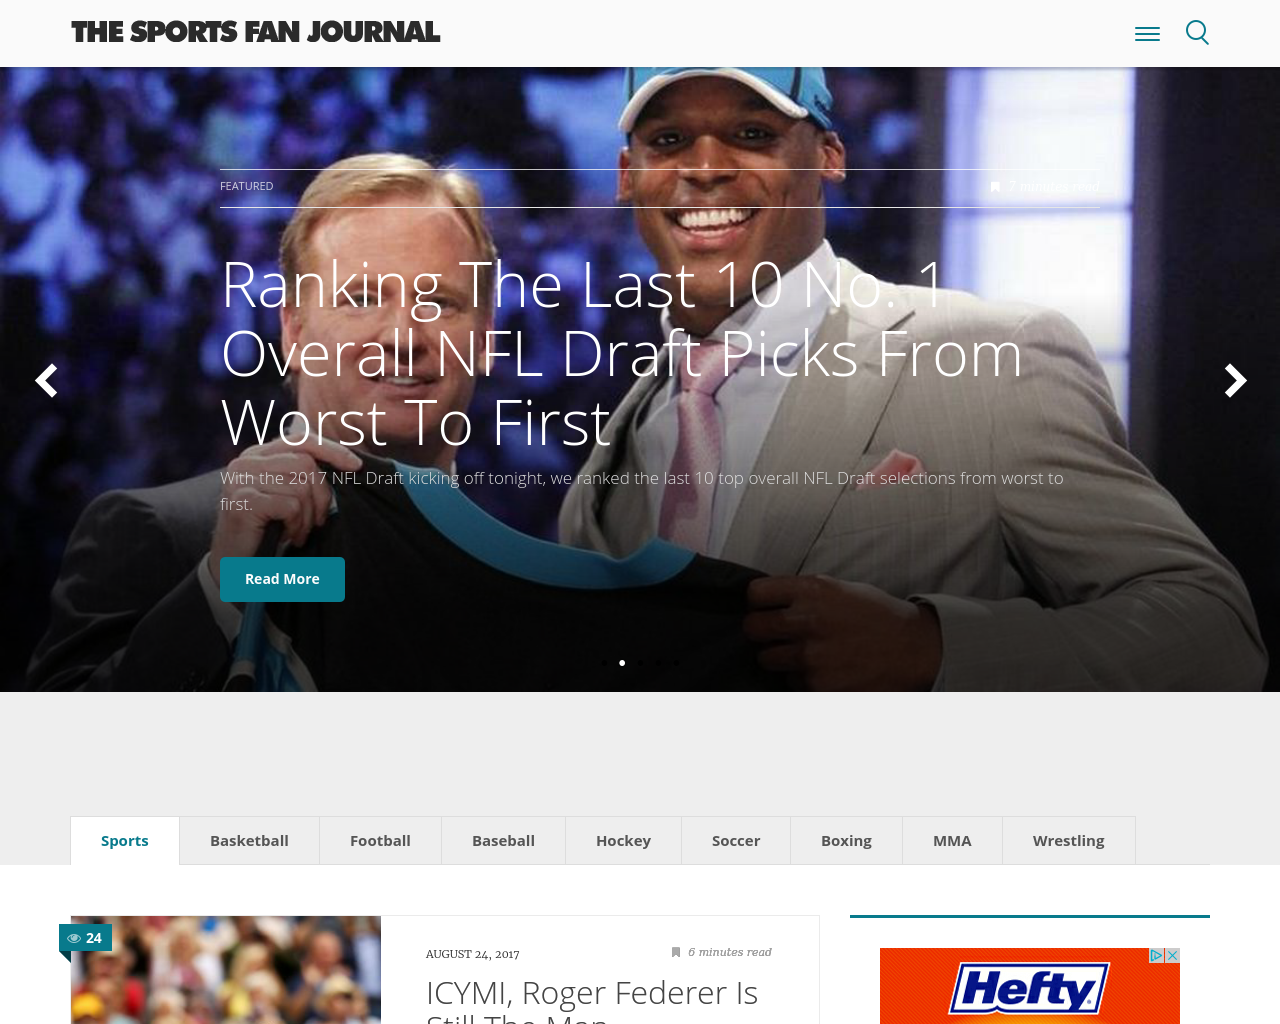 THE-SPORTS-FAN-JOURNAL-Advertising-Reviews-Pricing